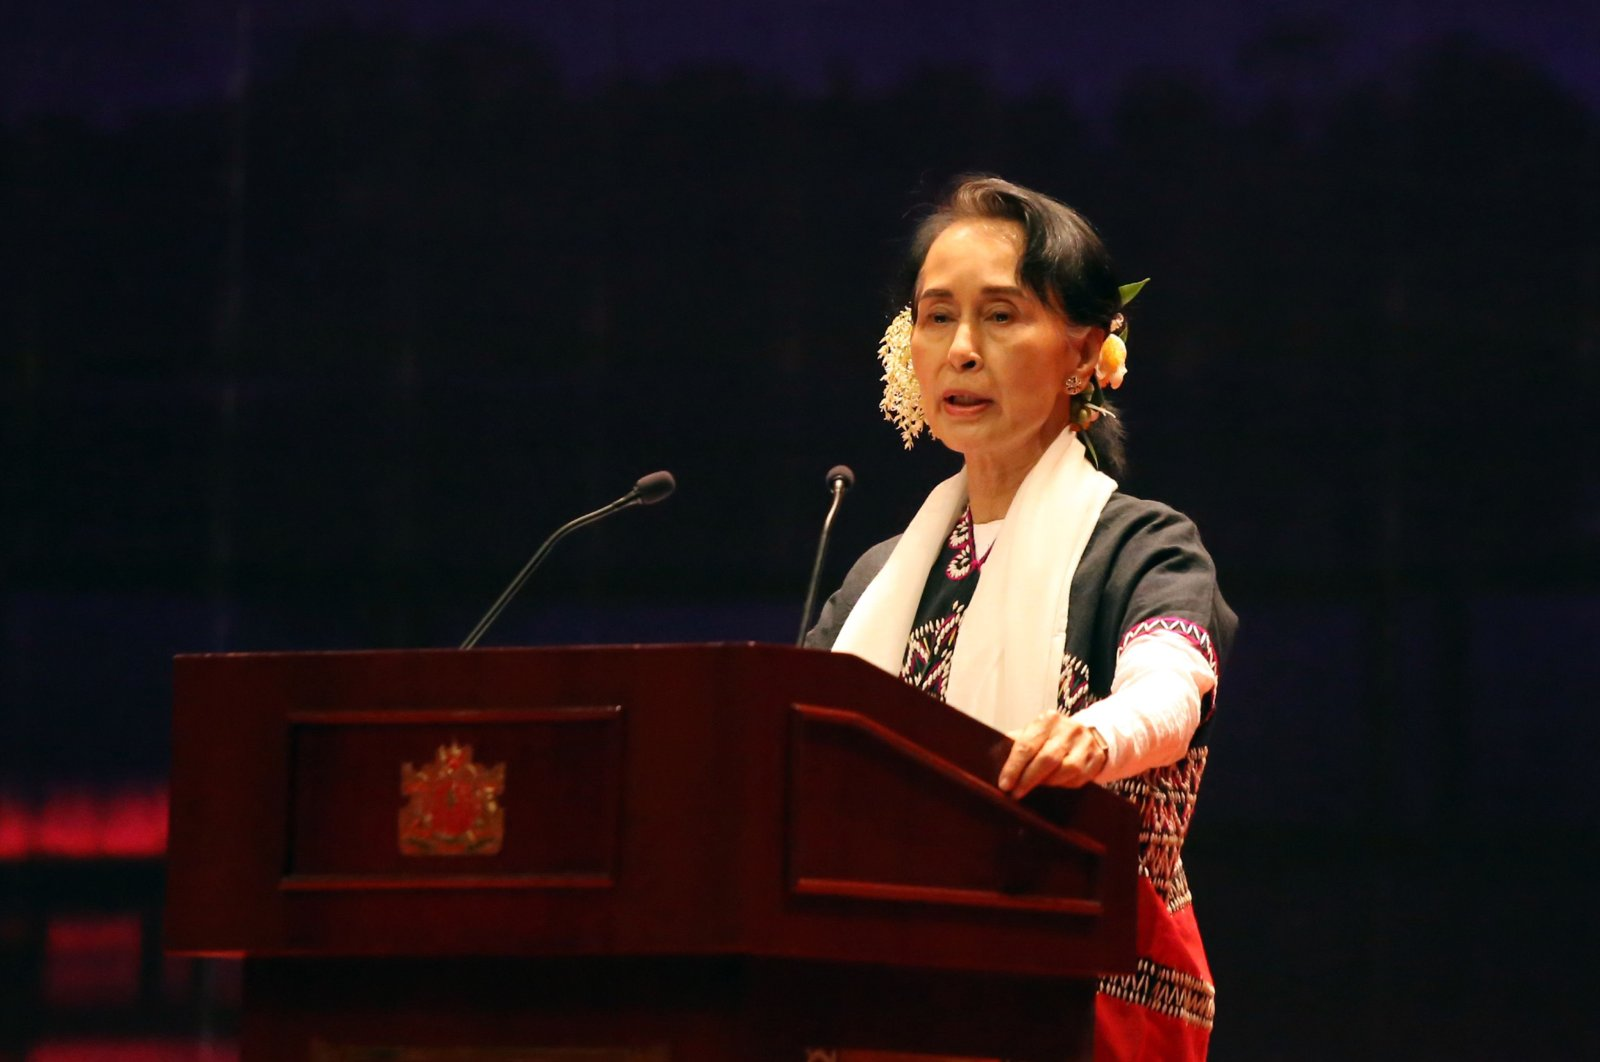 Myanmar's State Counselor Aung San Suu Kyi delivers her speech during a Karen New Year ceremony, Naypyidaw, Dec. 18, 2017. (AFP Photo)